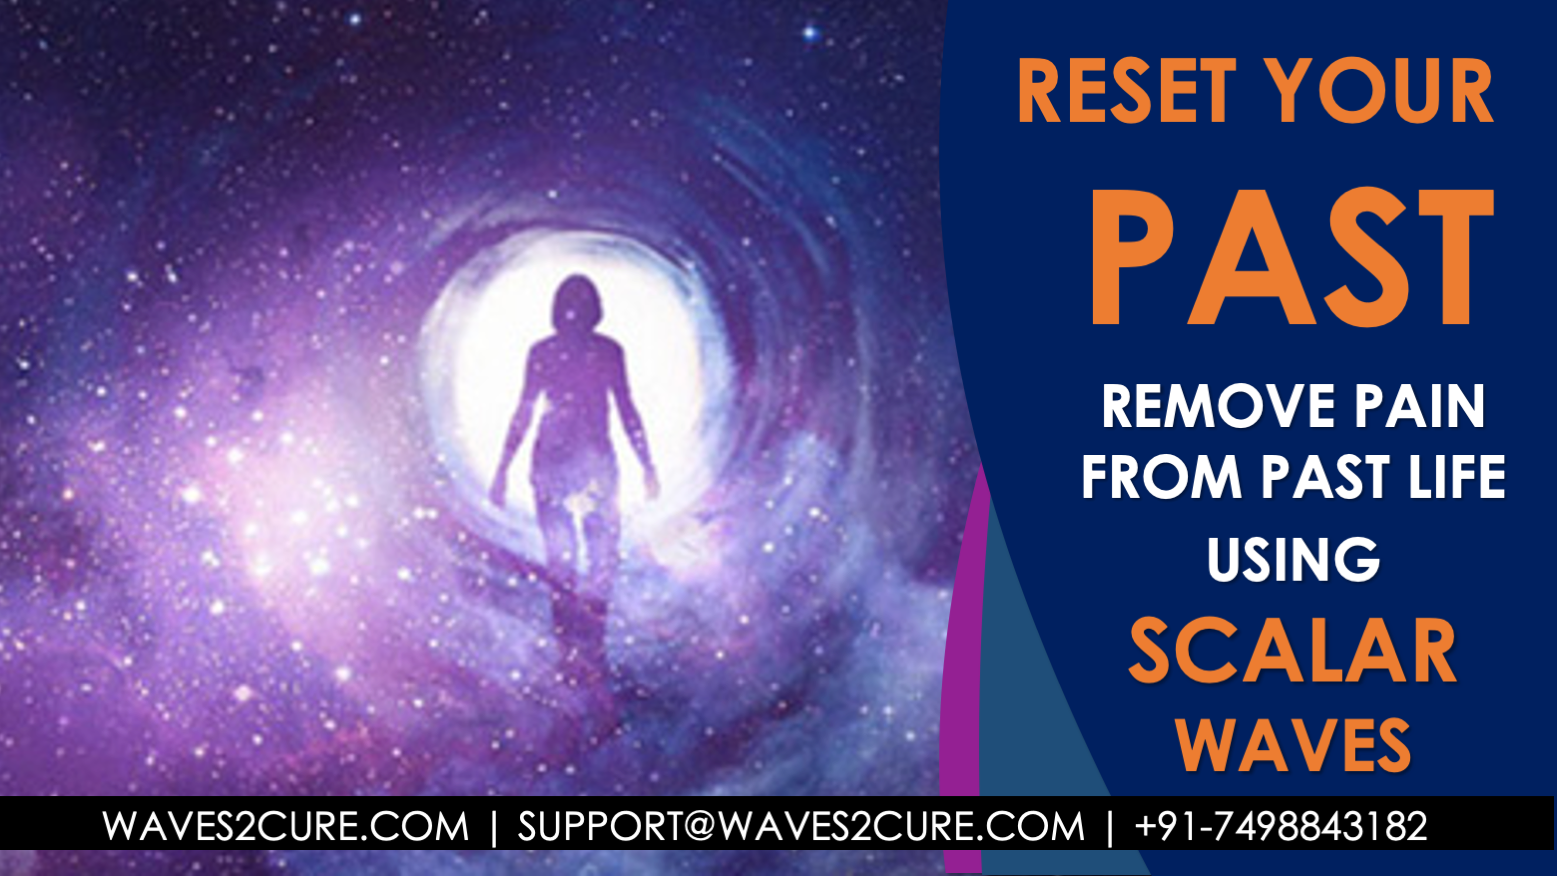 Reset Your Past Life, Past Life Healing Using Scalar Waves